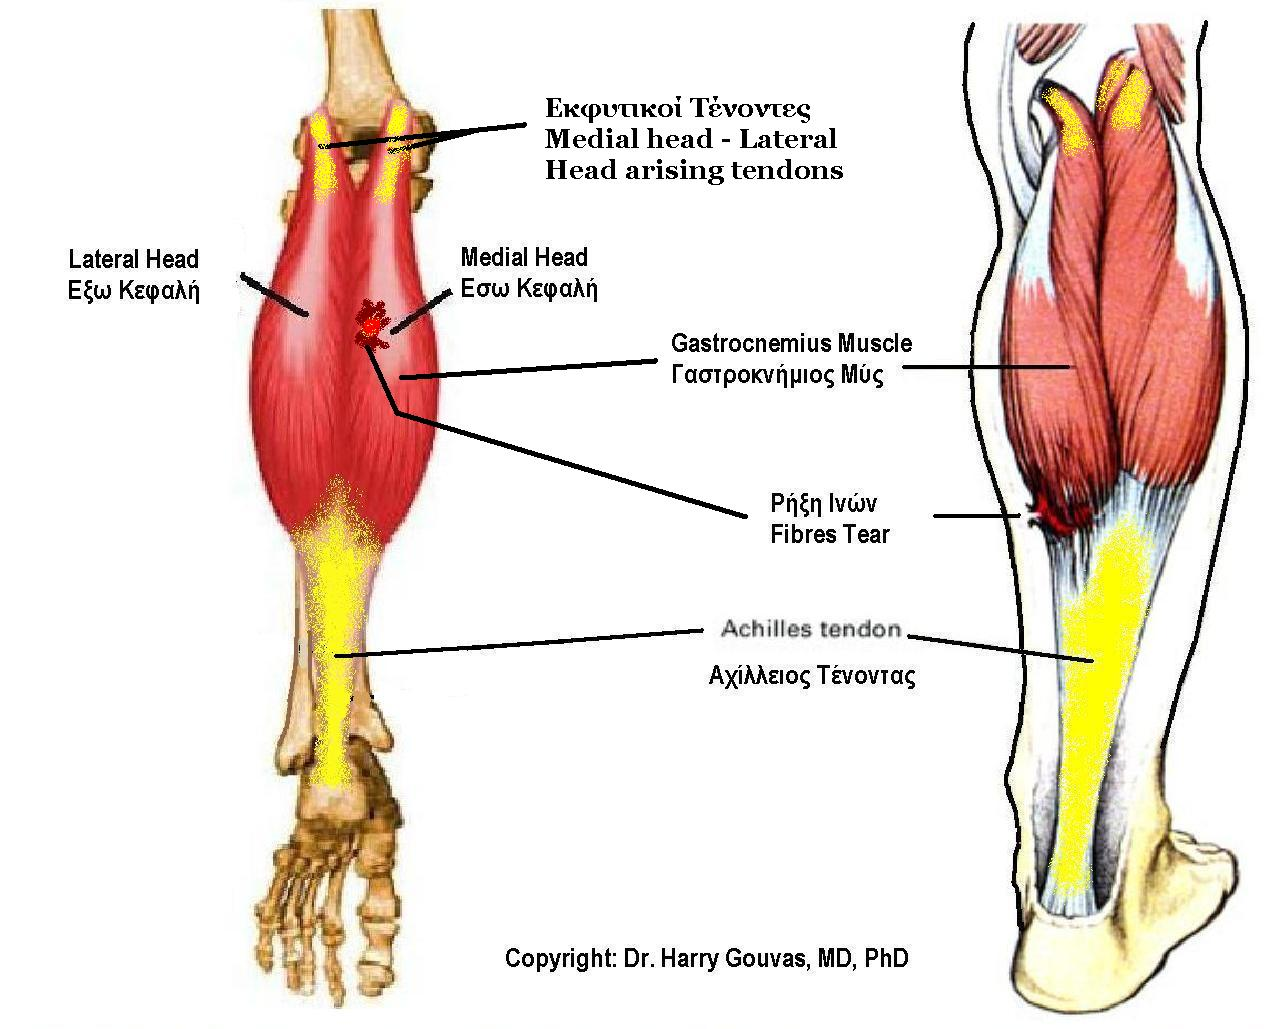 hight resolution of file gastrocnemius muscle jpg